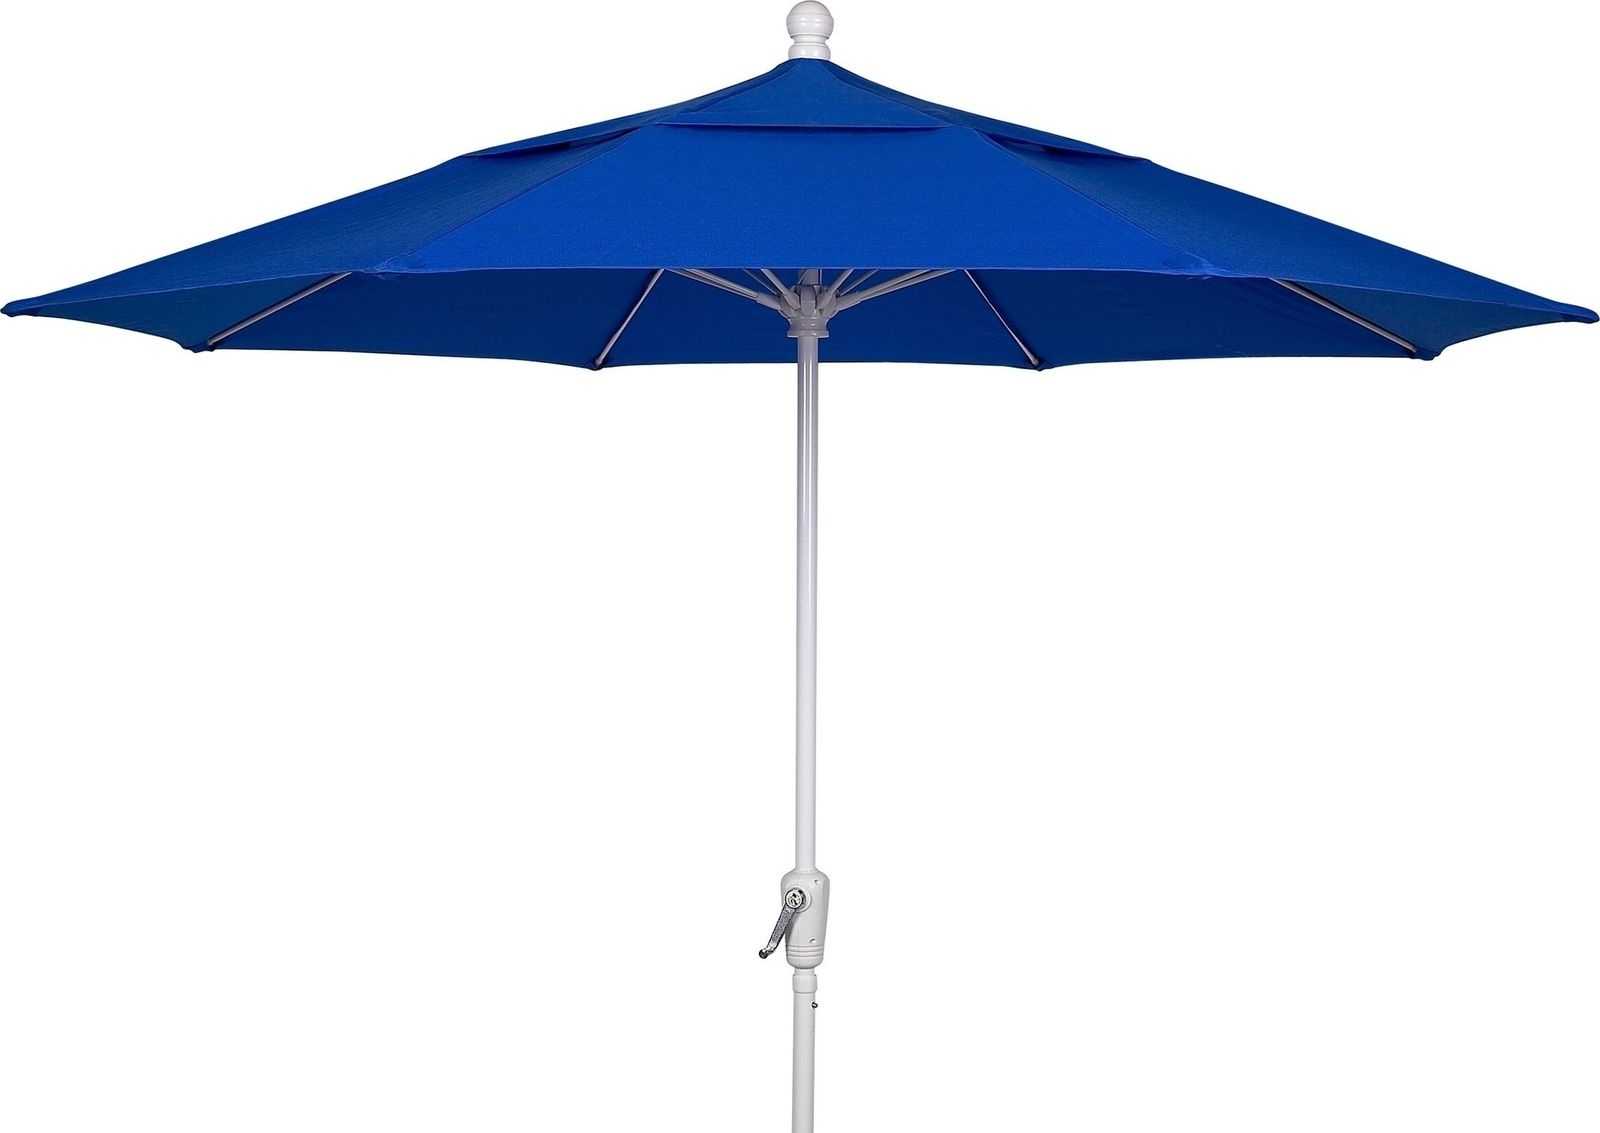 Fiberbuilt Umbrellas Patio Umbrella (View 8 of 20)